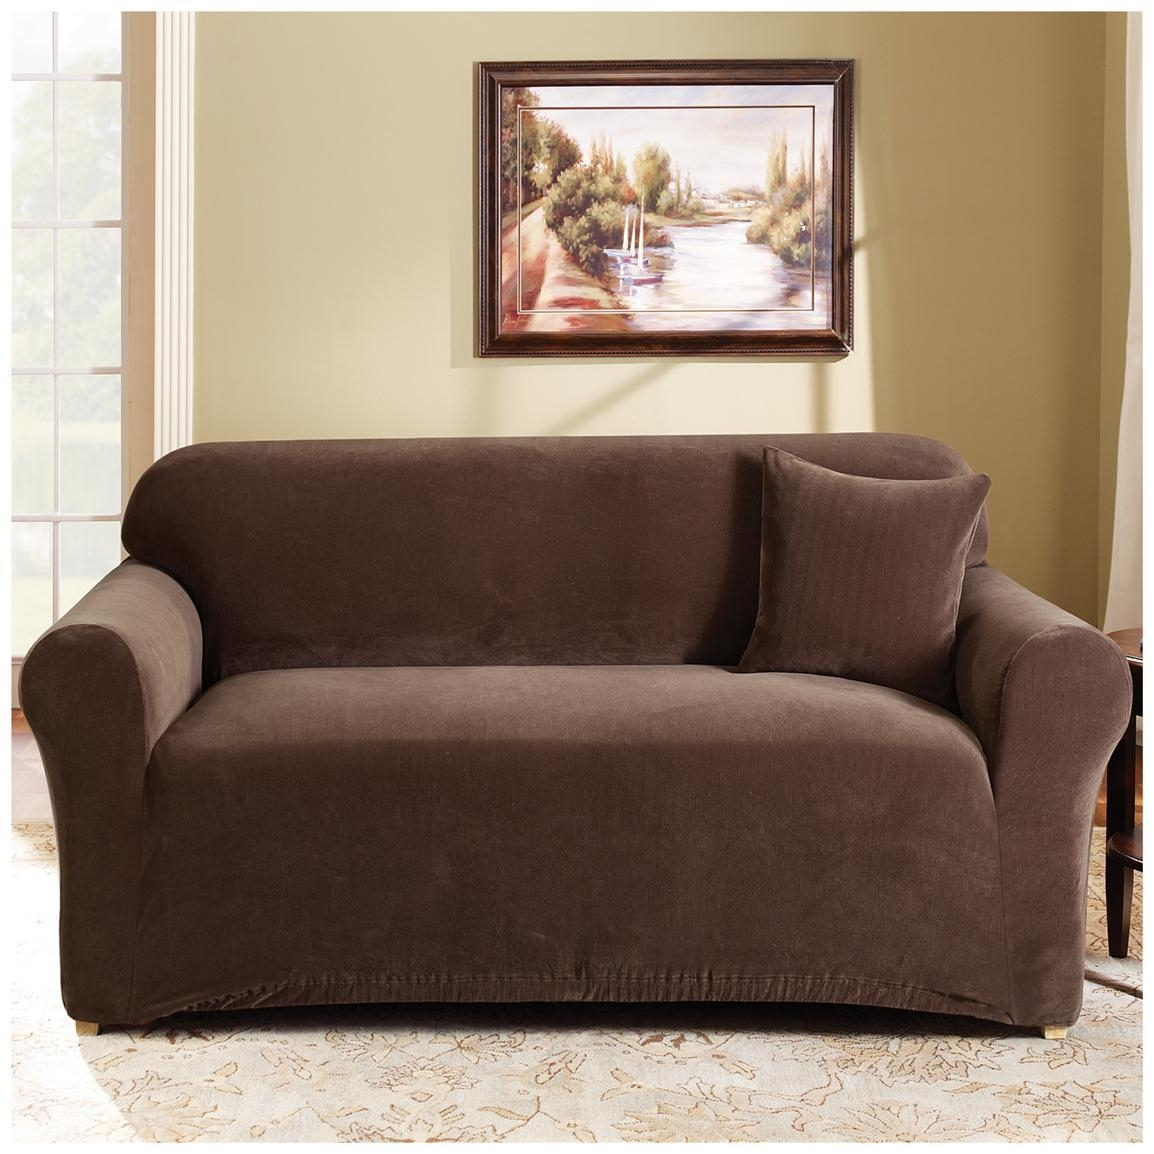 Sure Fit® Stretch Pearson Sofa Slipcover – 292823, Furniture Throughout Stretch Slipcovers For Sofas (Image 19 of 20)